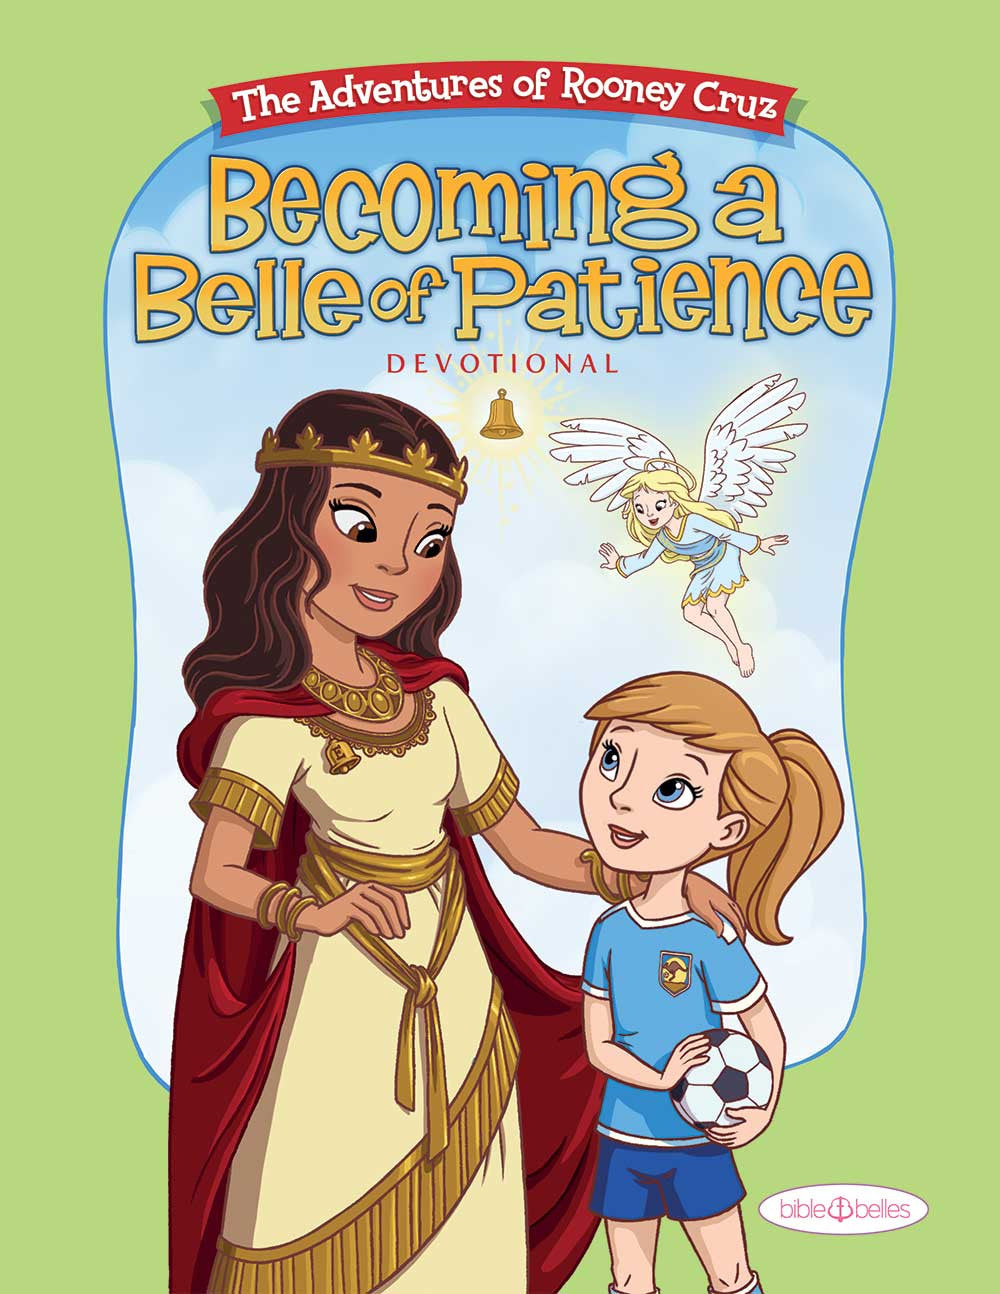 Becoming a Belle of Patience Devotional Download